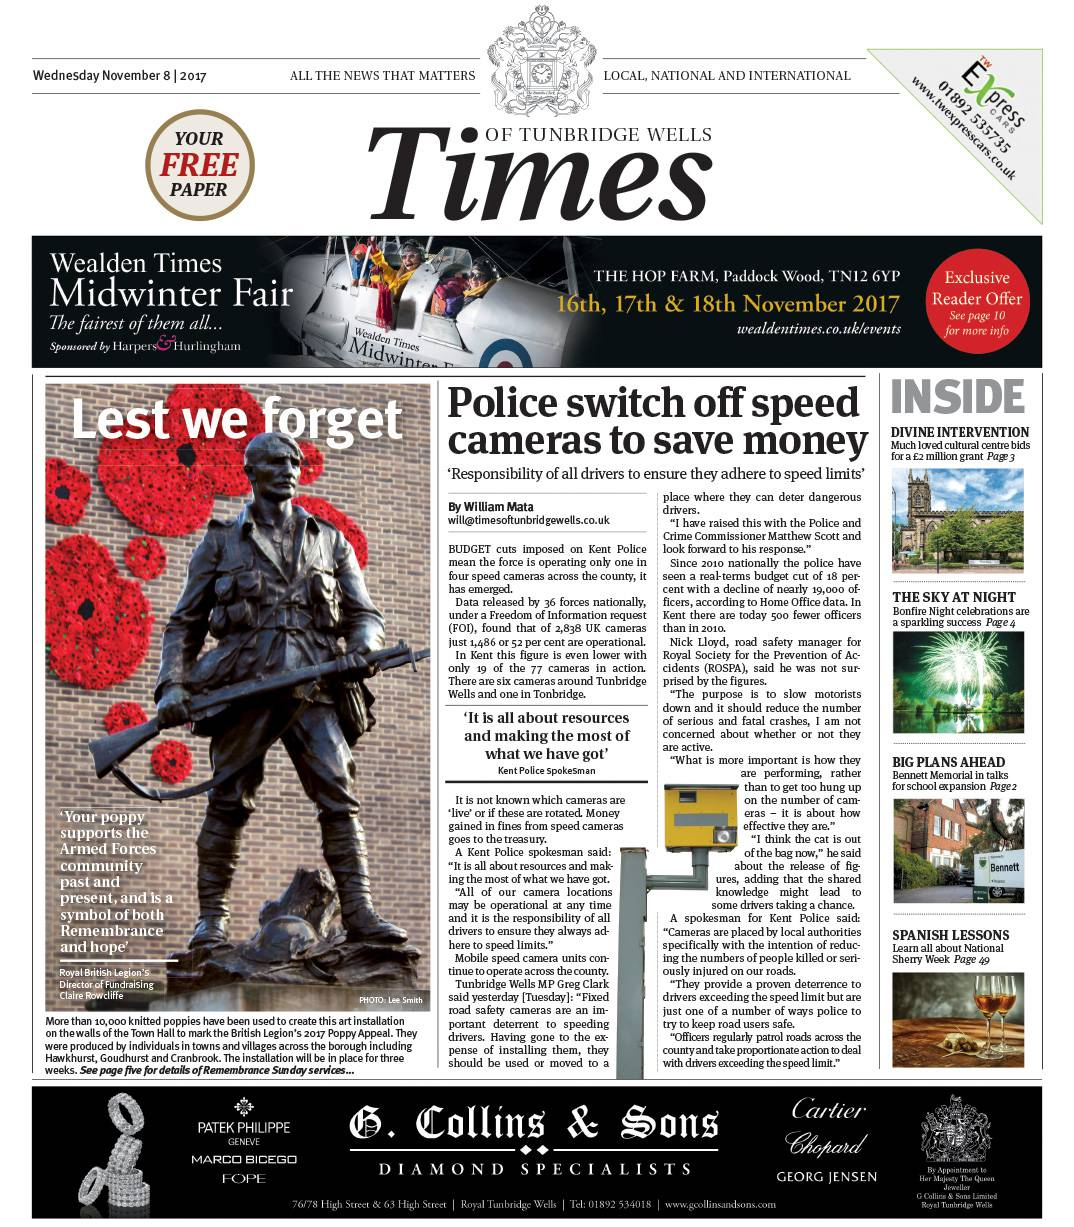 Read the Times of Tunbridge Wells 8th November 2017